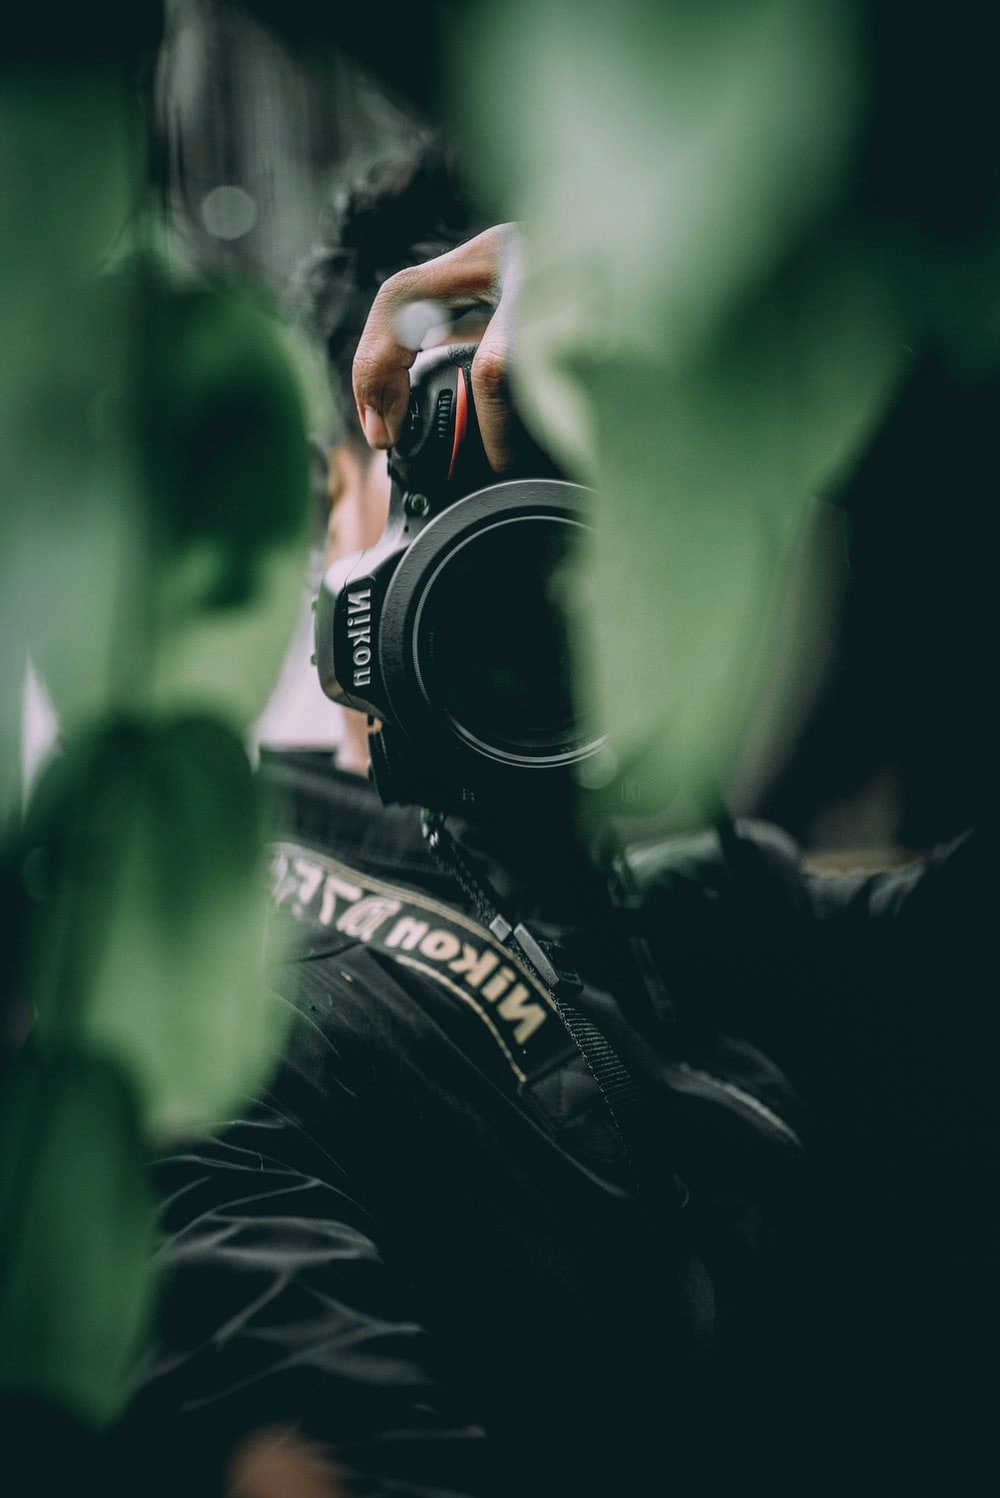 500+ Photographer Pictures [HD] | Download Free Images on Unsplash